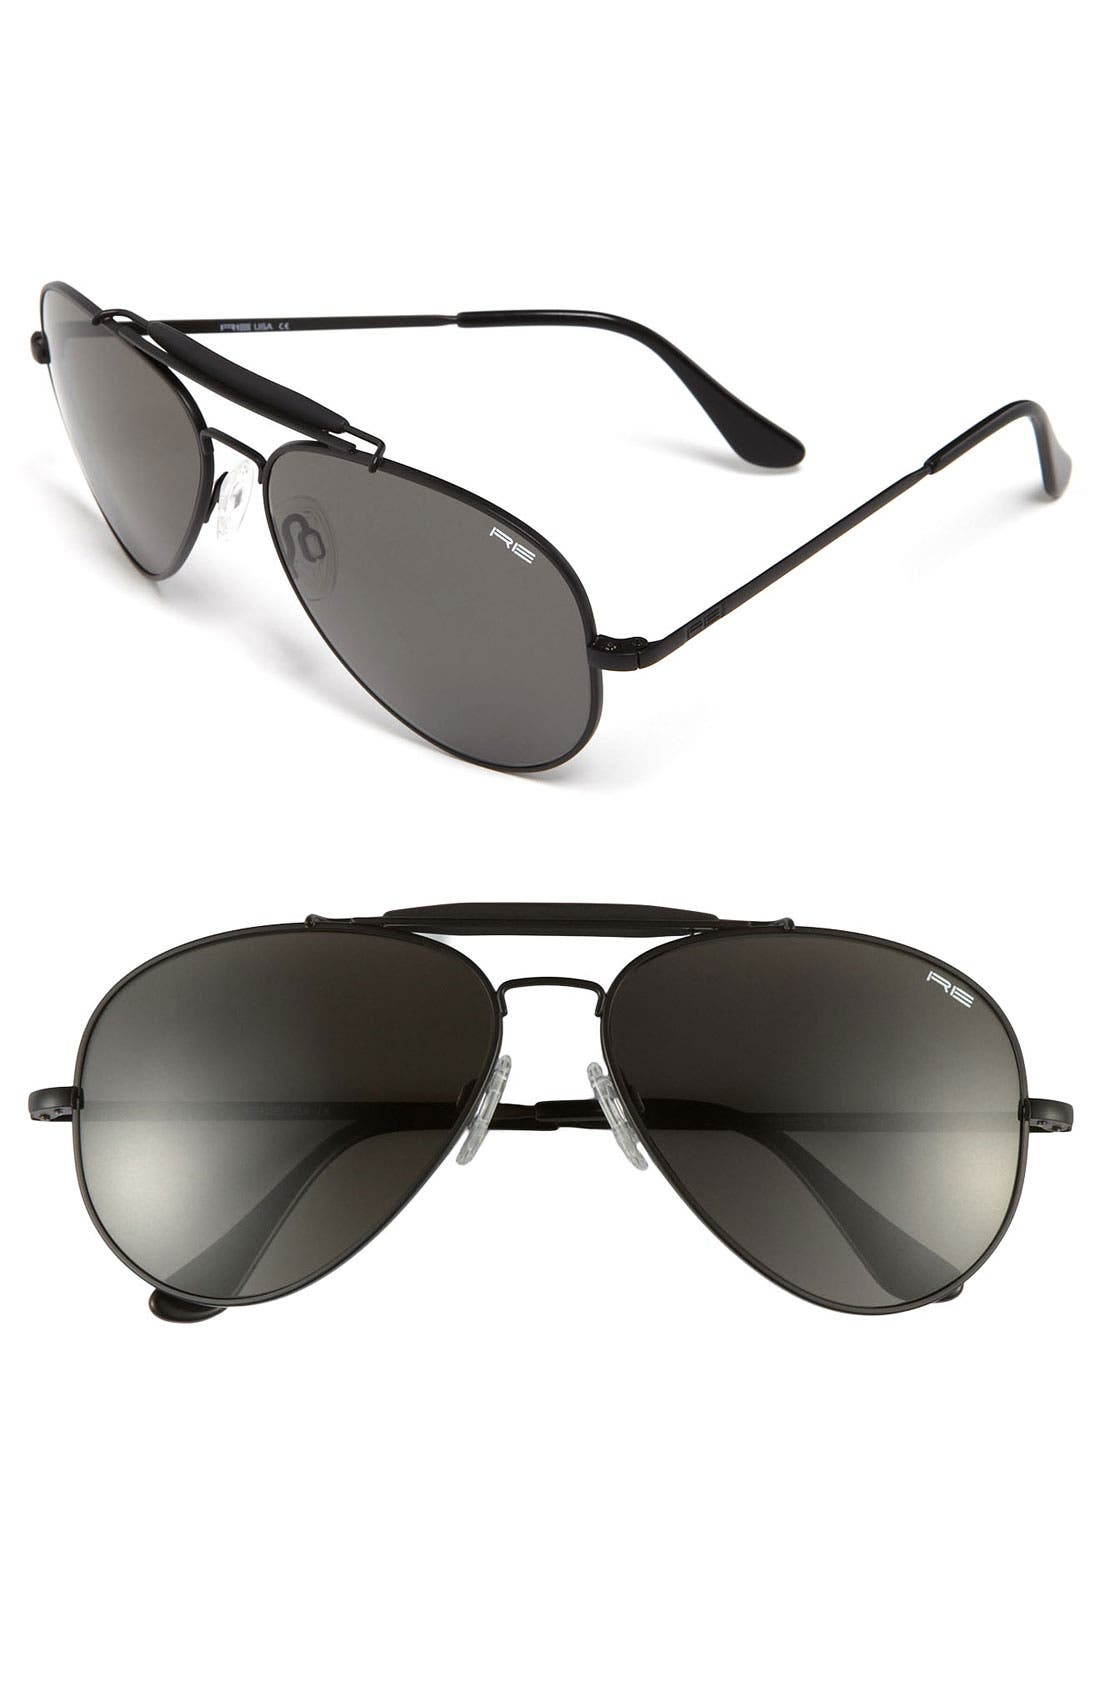 Main Image - Randolph Engineering 'Sportsman' 61mm Polarized Sunglasses